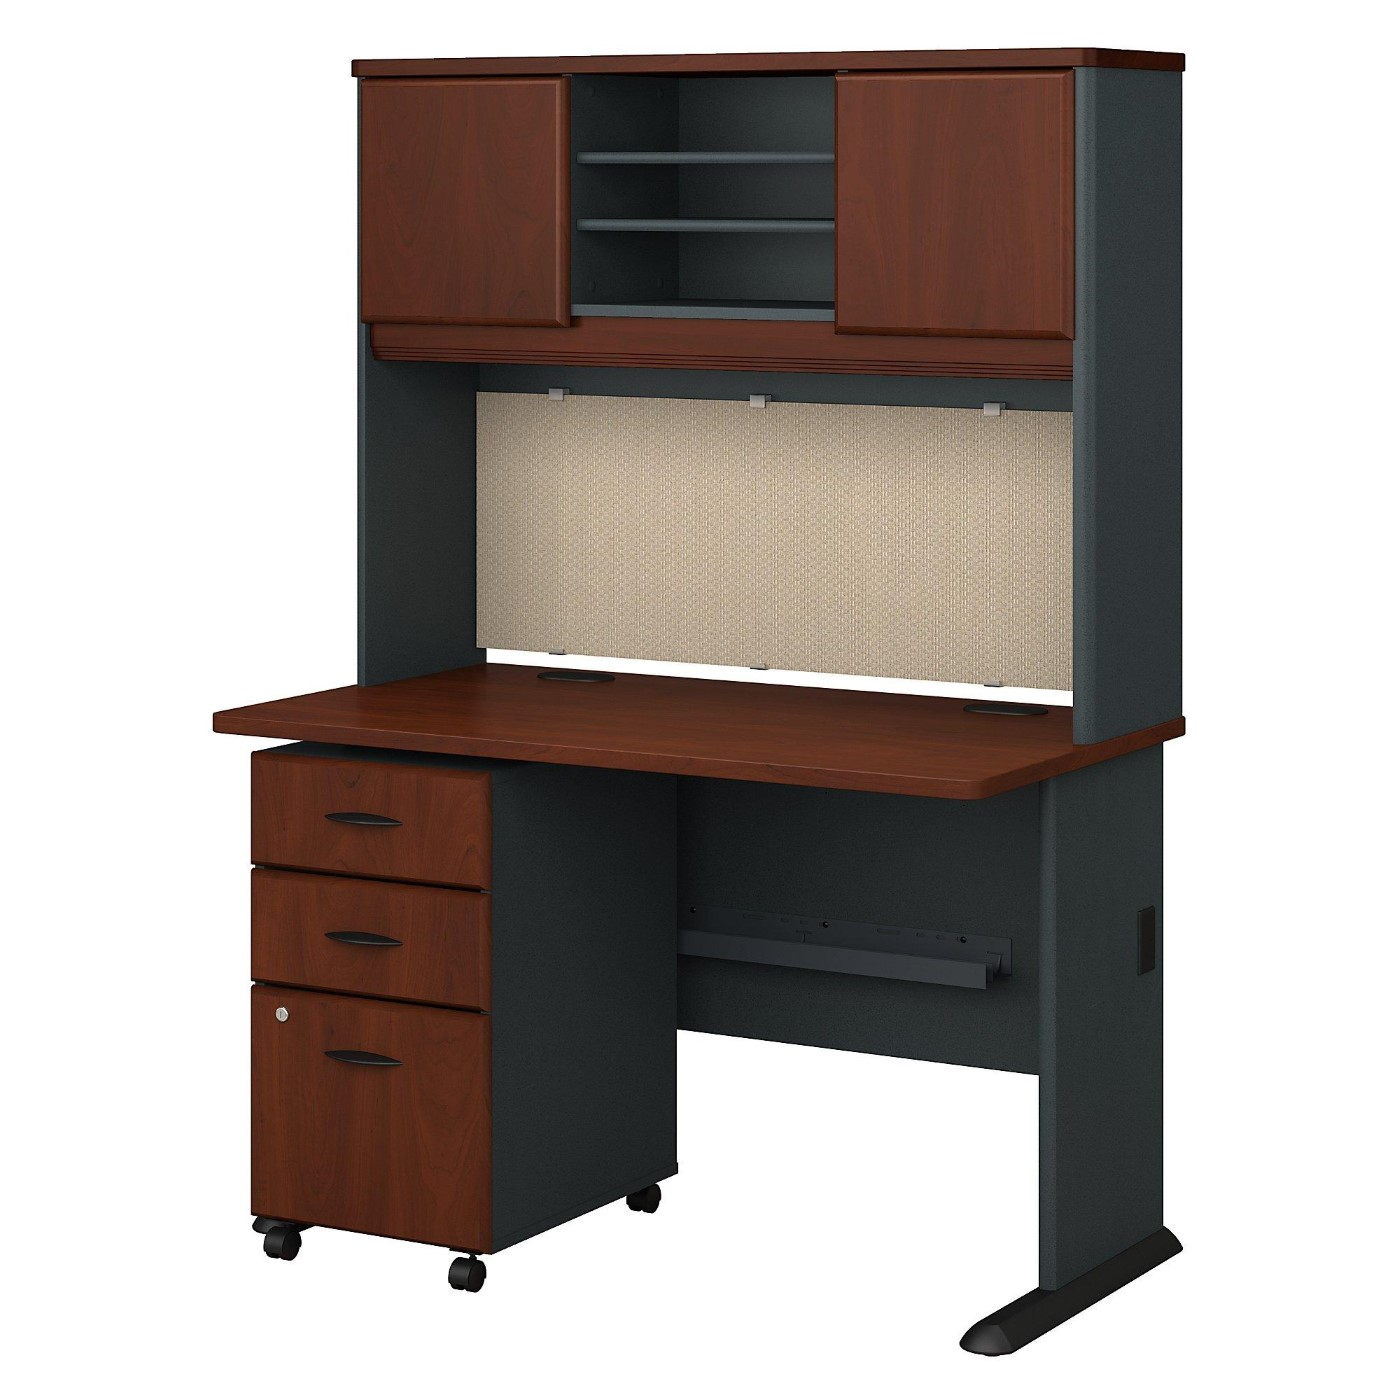 <font color=#c60><b>BUSH BUSINESS FURNITURE SERIES A 48W DESK WITH HUTCH AND MOBILE FILE CABINET #EH-SRA049HCSU. TAA COMPLIANT. FREE SHIPPING</font></b></font></b>